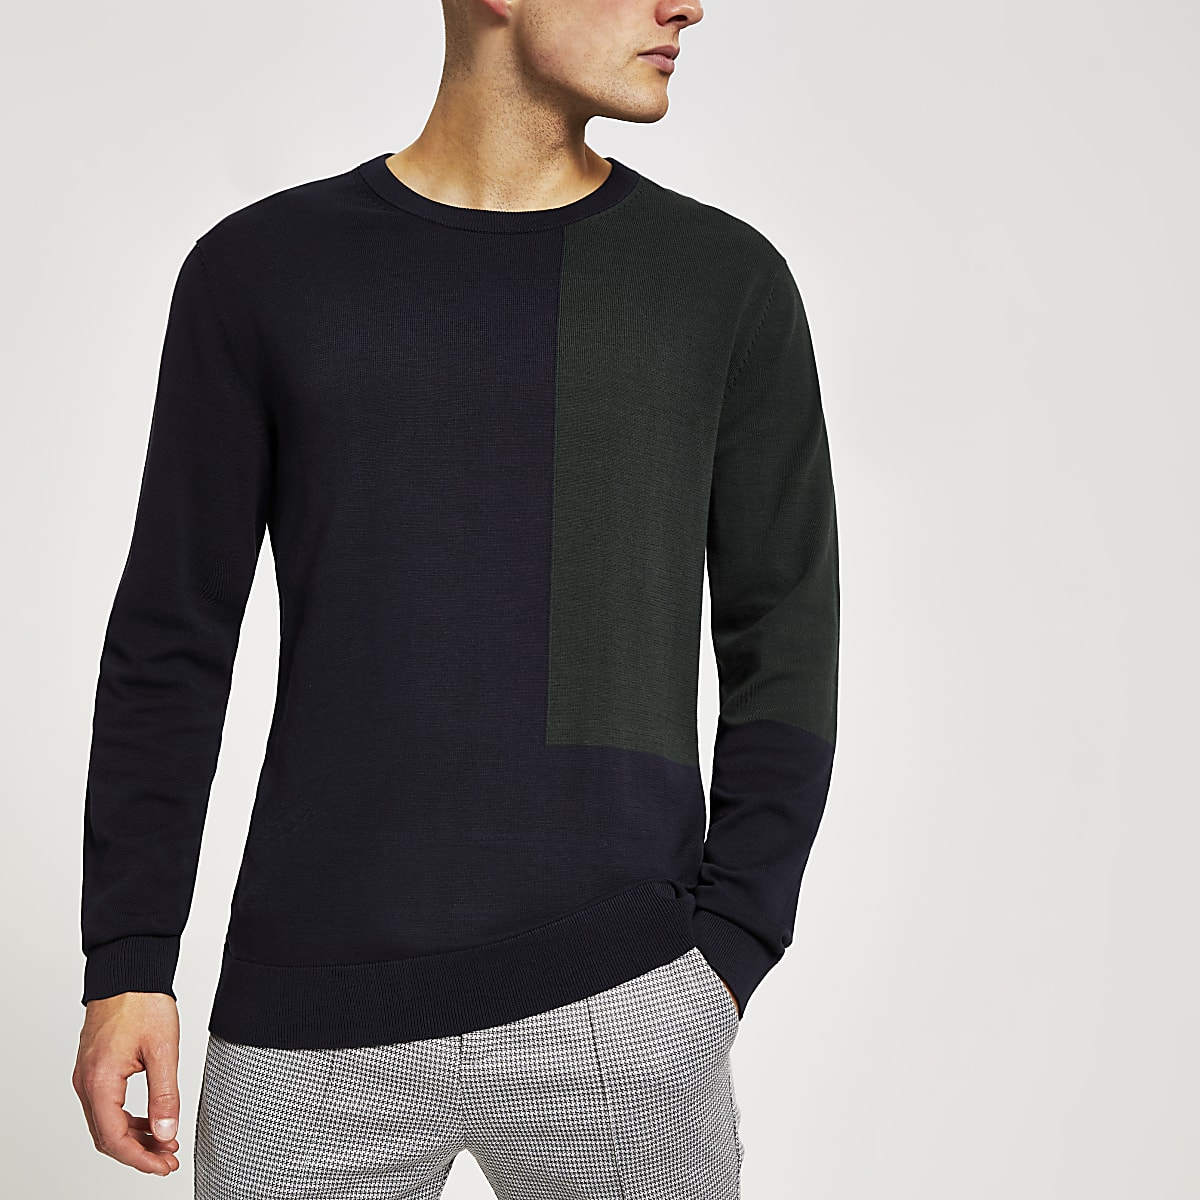 Selected Homme navy blocked jumper